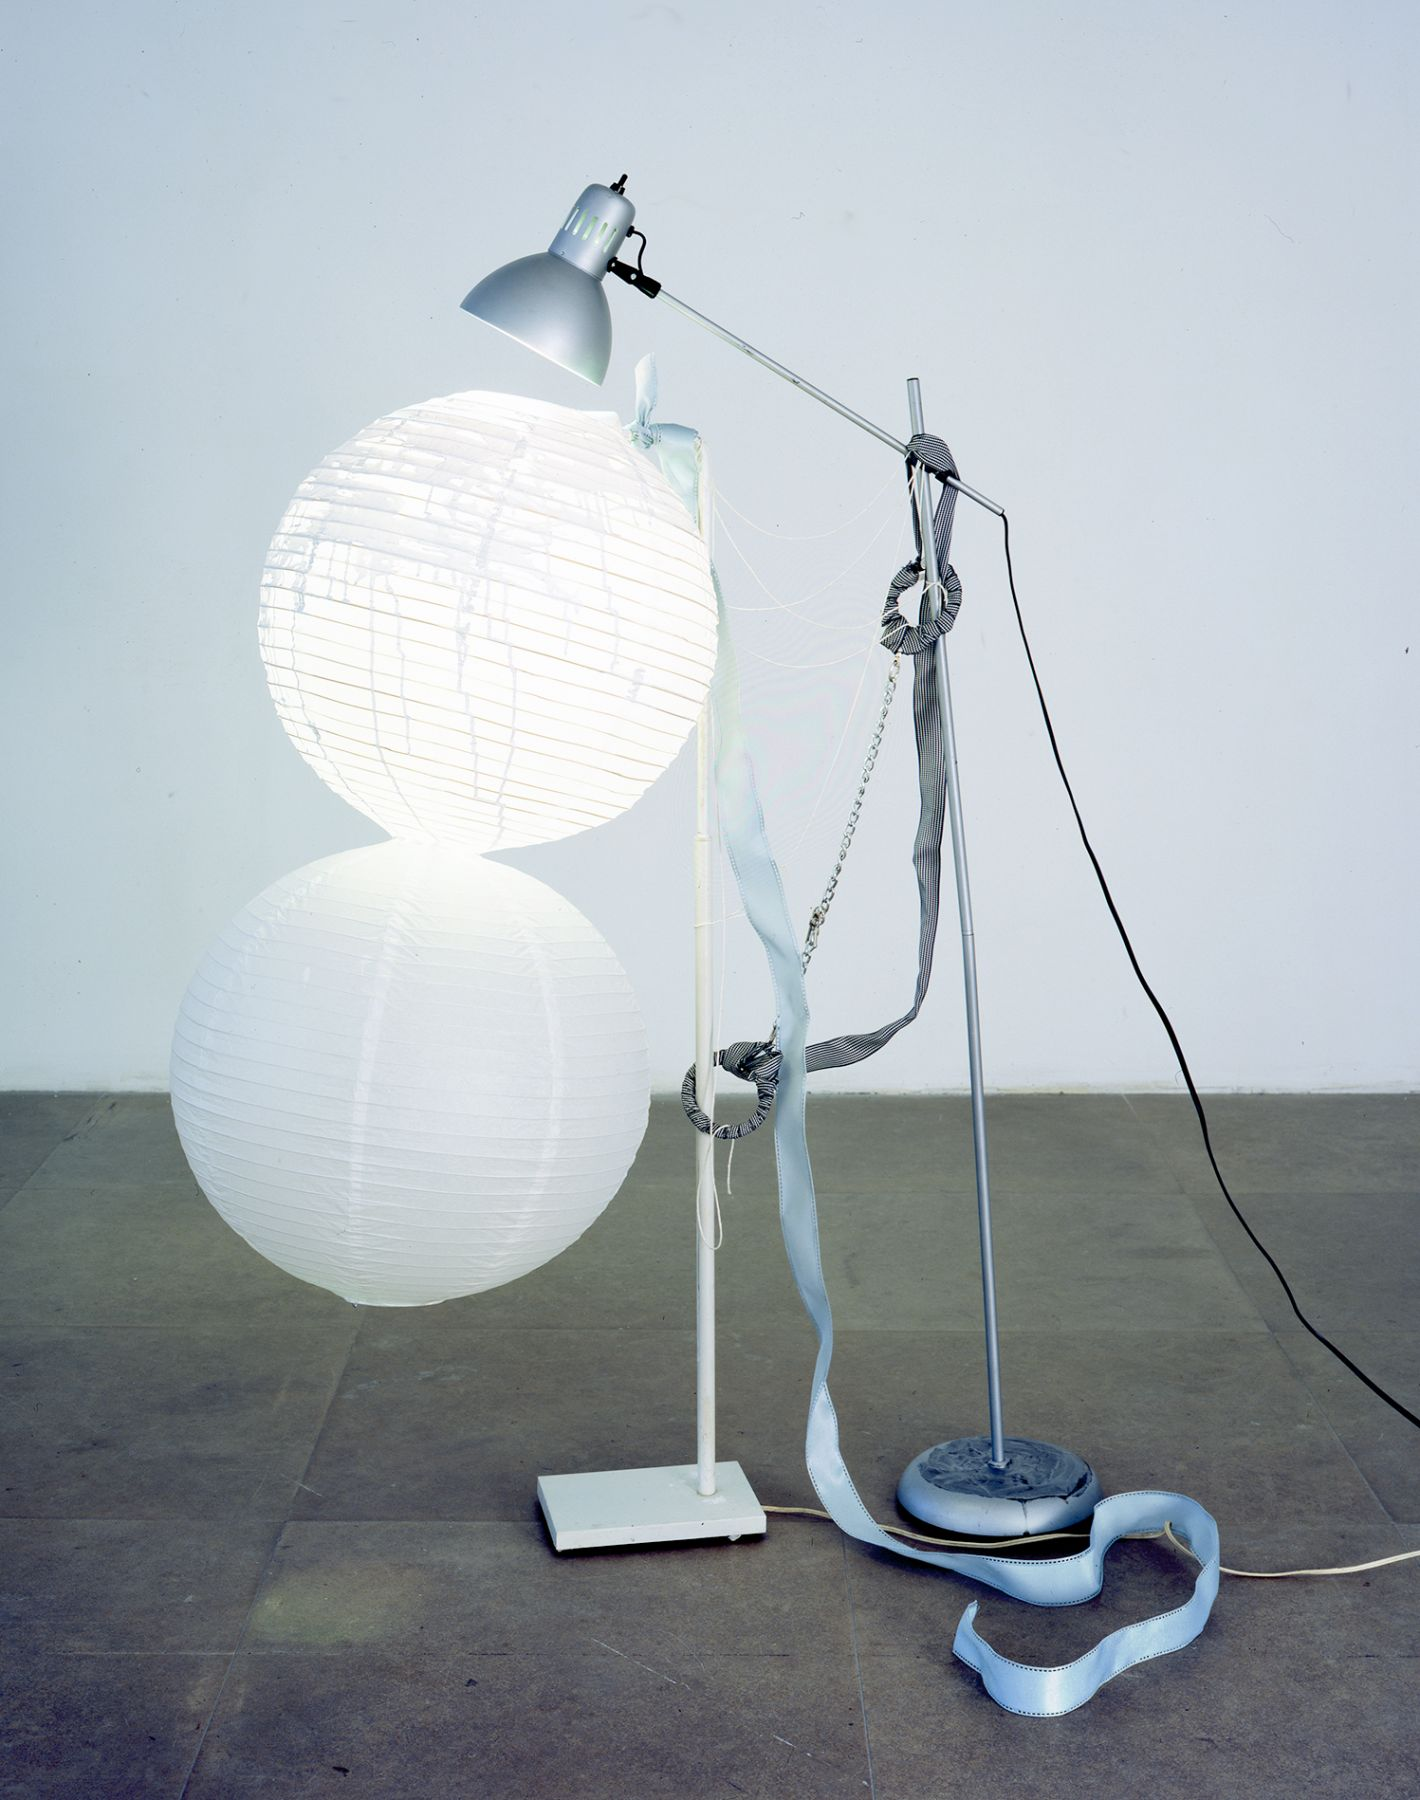 The Dependent Lamp, 2006, mixed media lamps, 59 x 36 x 20 inches (149.9 x 91.4 x 50.8 cm)